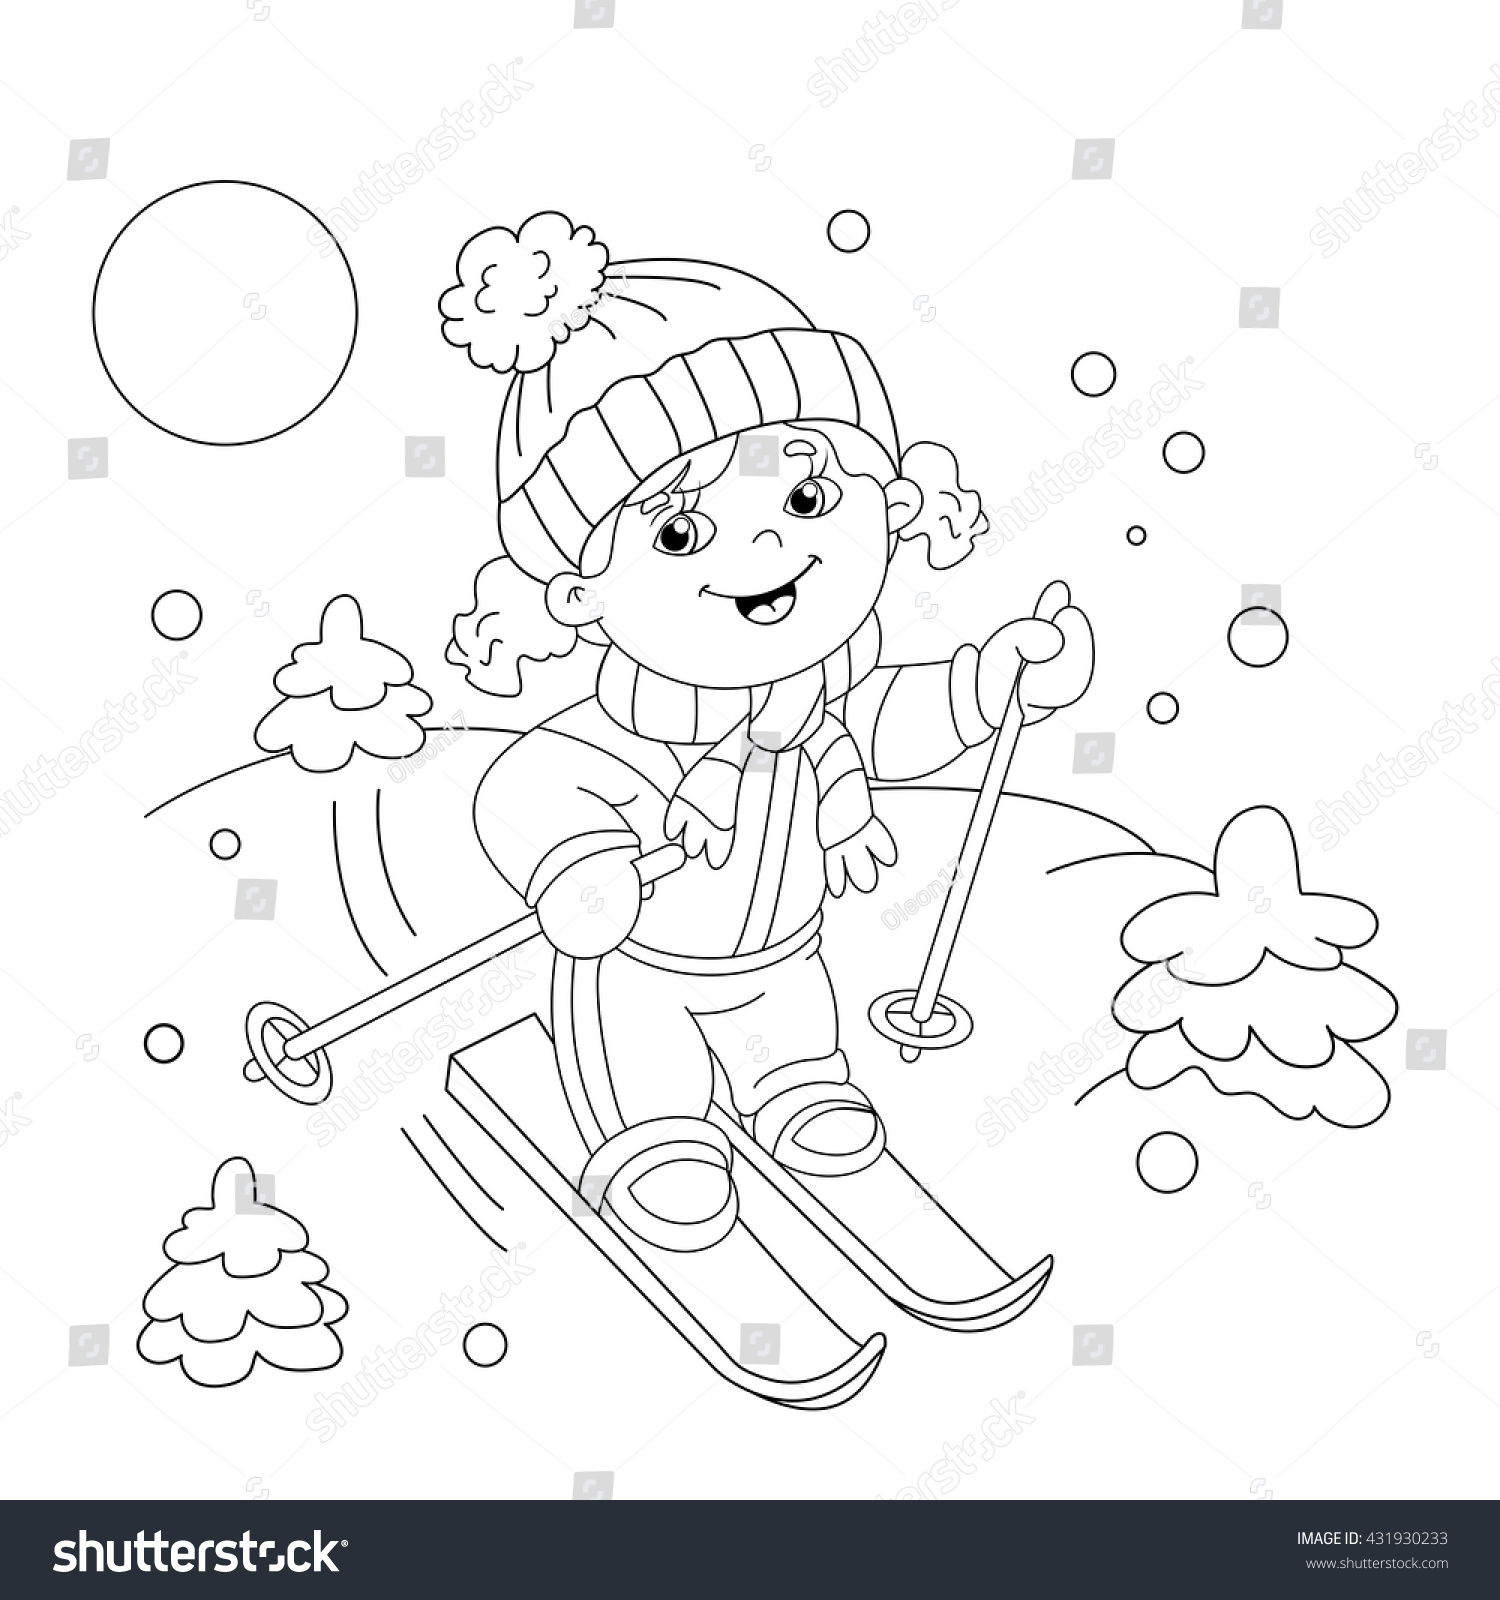 coloring page outline of cartoon girl riding on skis winter sports coloring book for - Sports Coloring Book